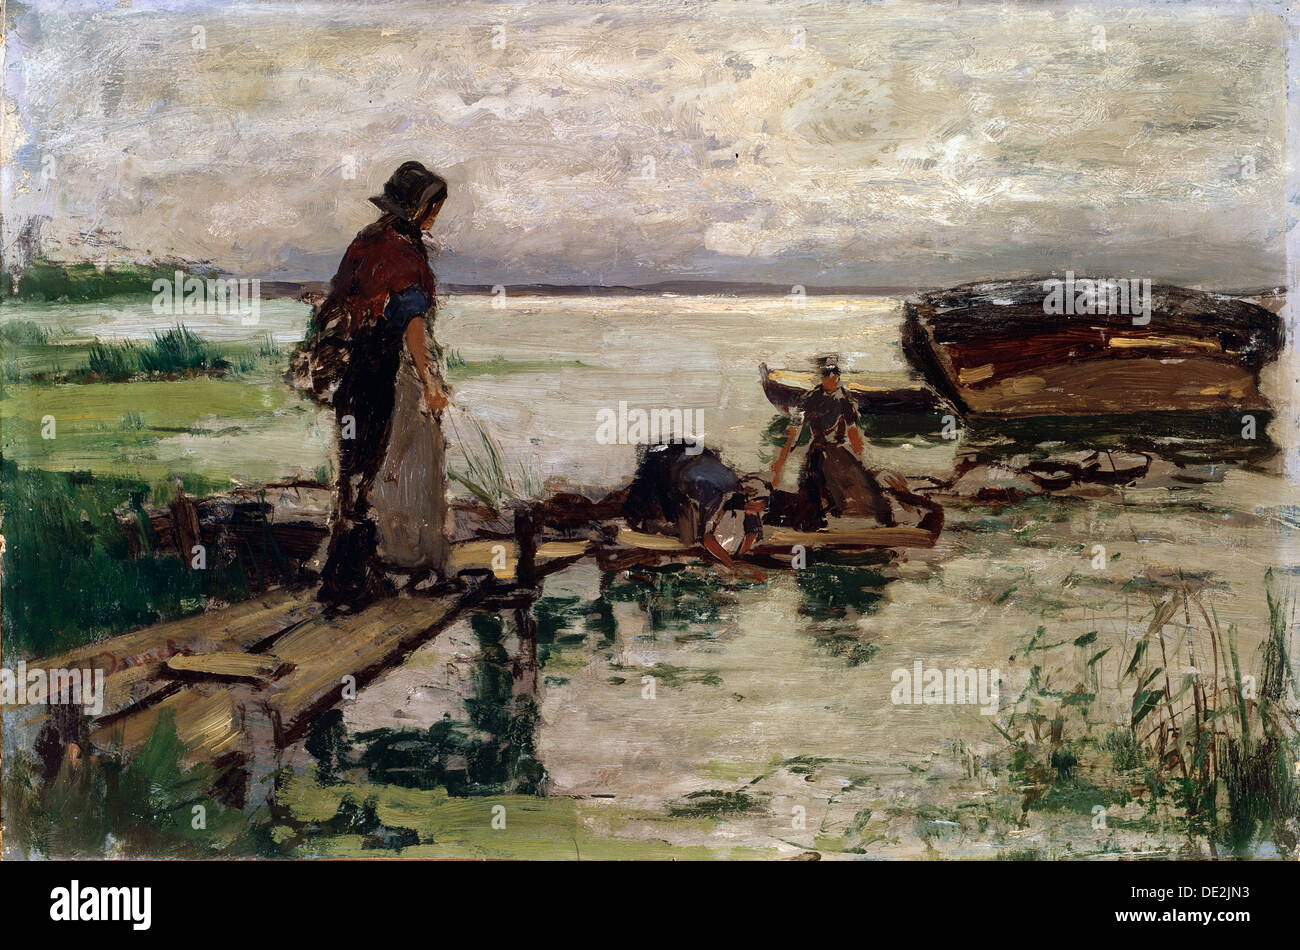 'At the Seashore', 19th or early 20th century. Artist: Jozef Israels - Stock Image